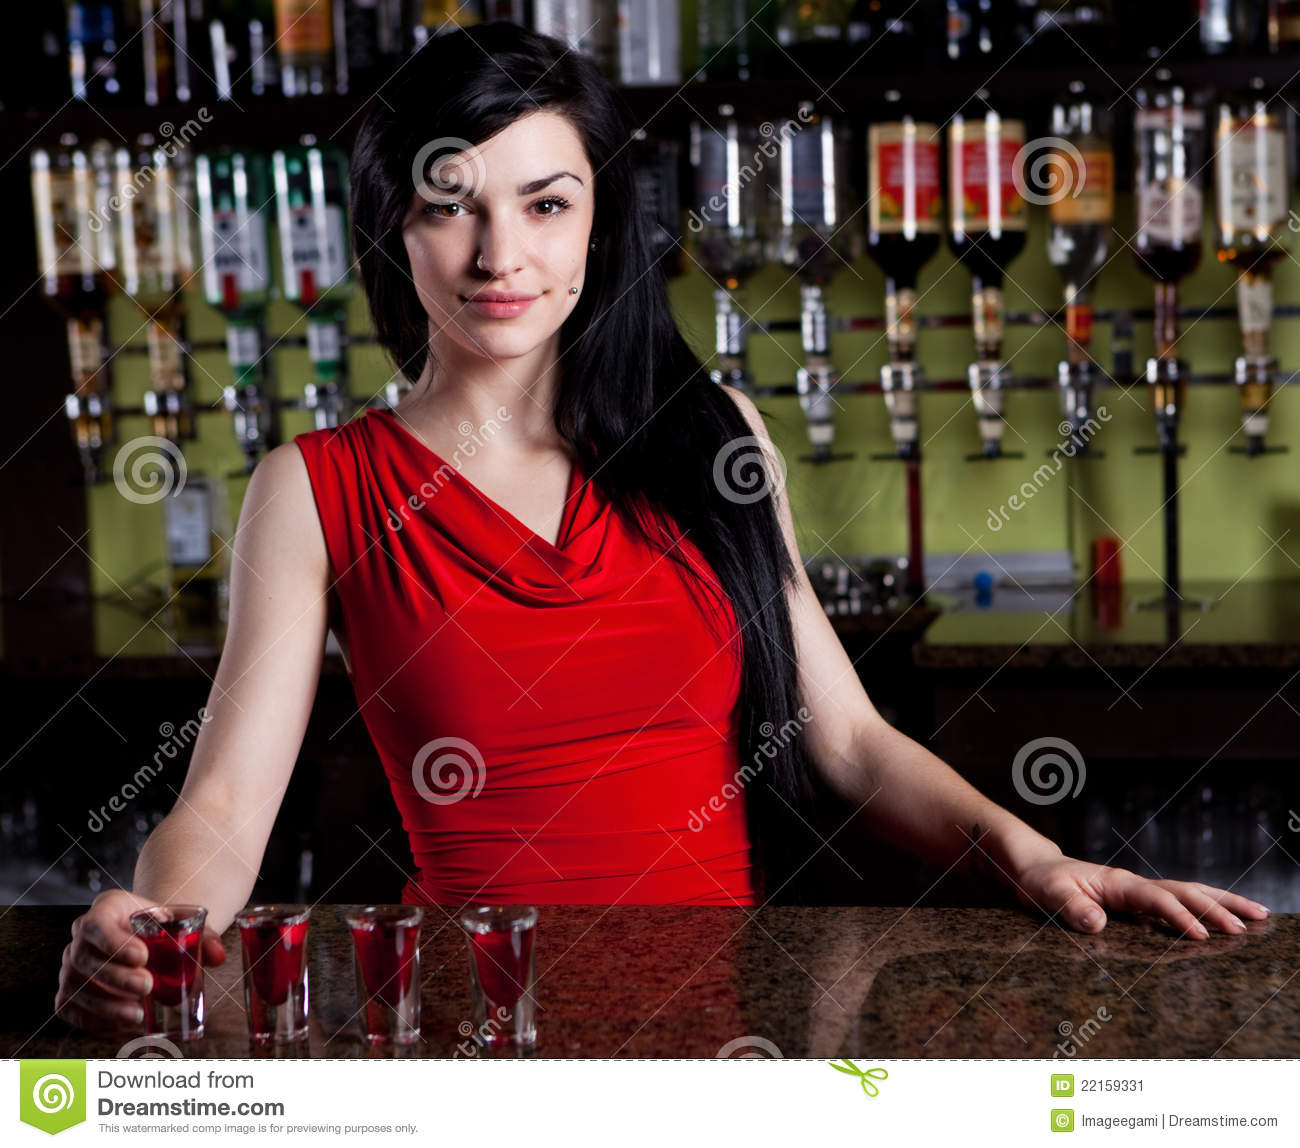 how to become a bar tender in canada